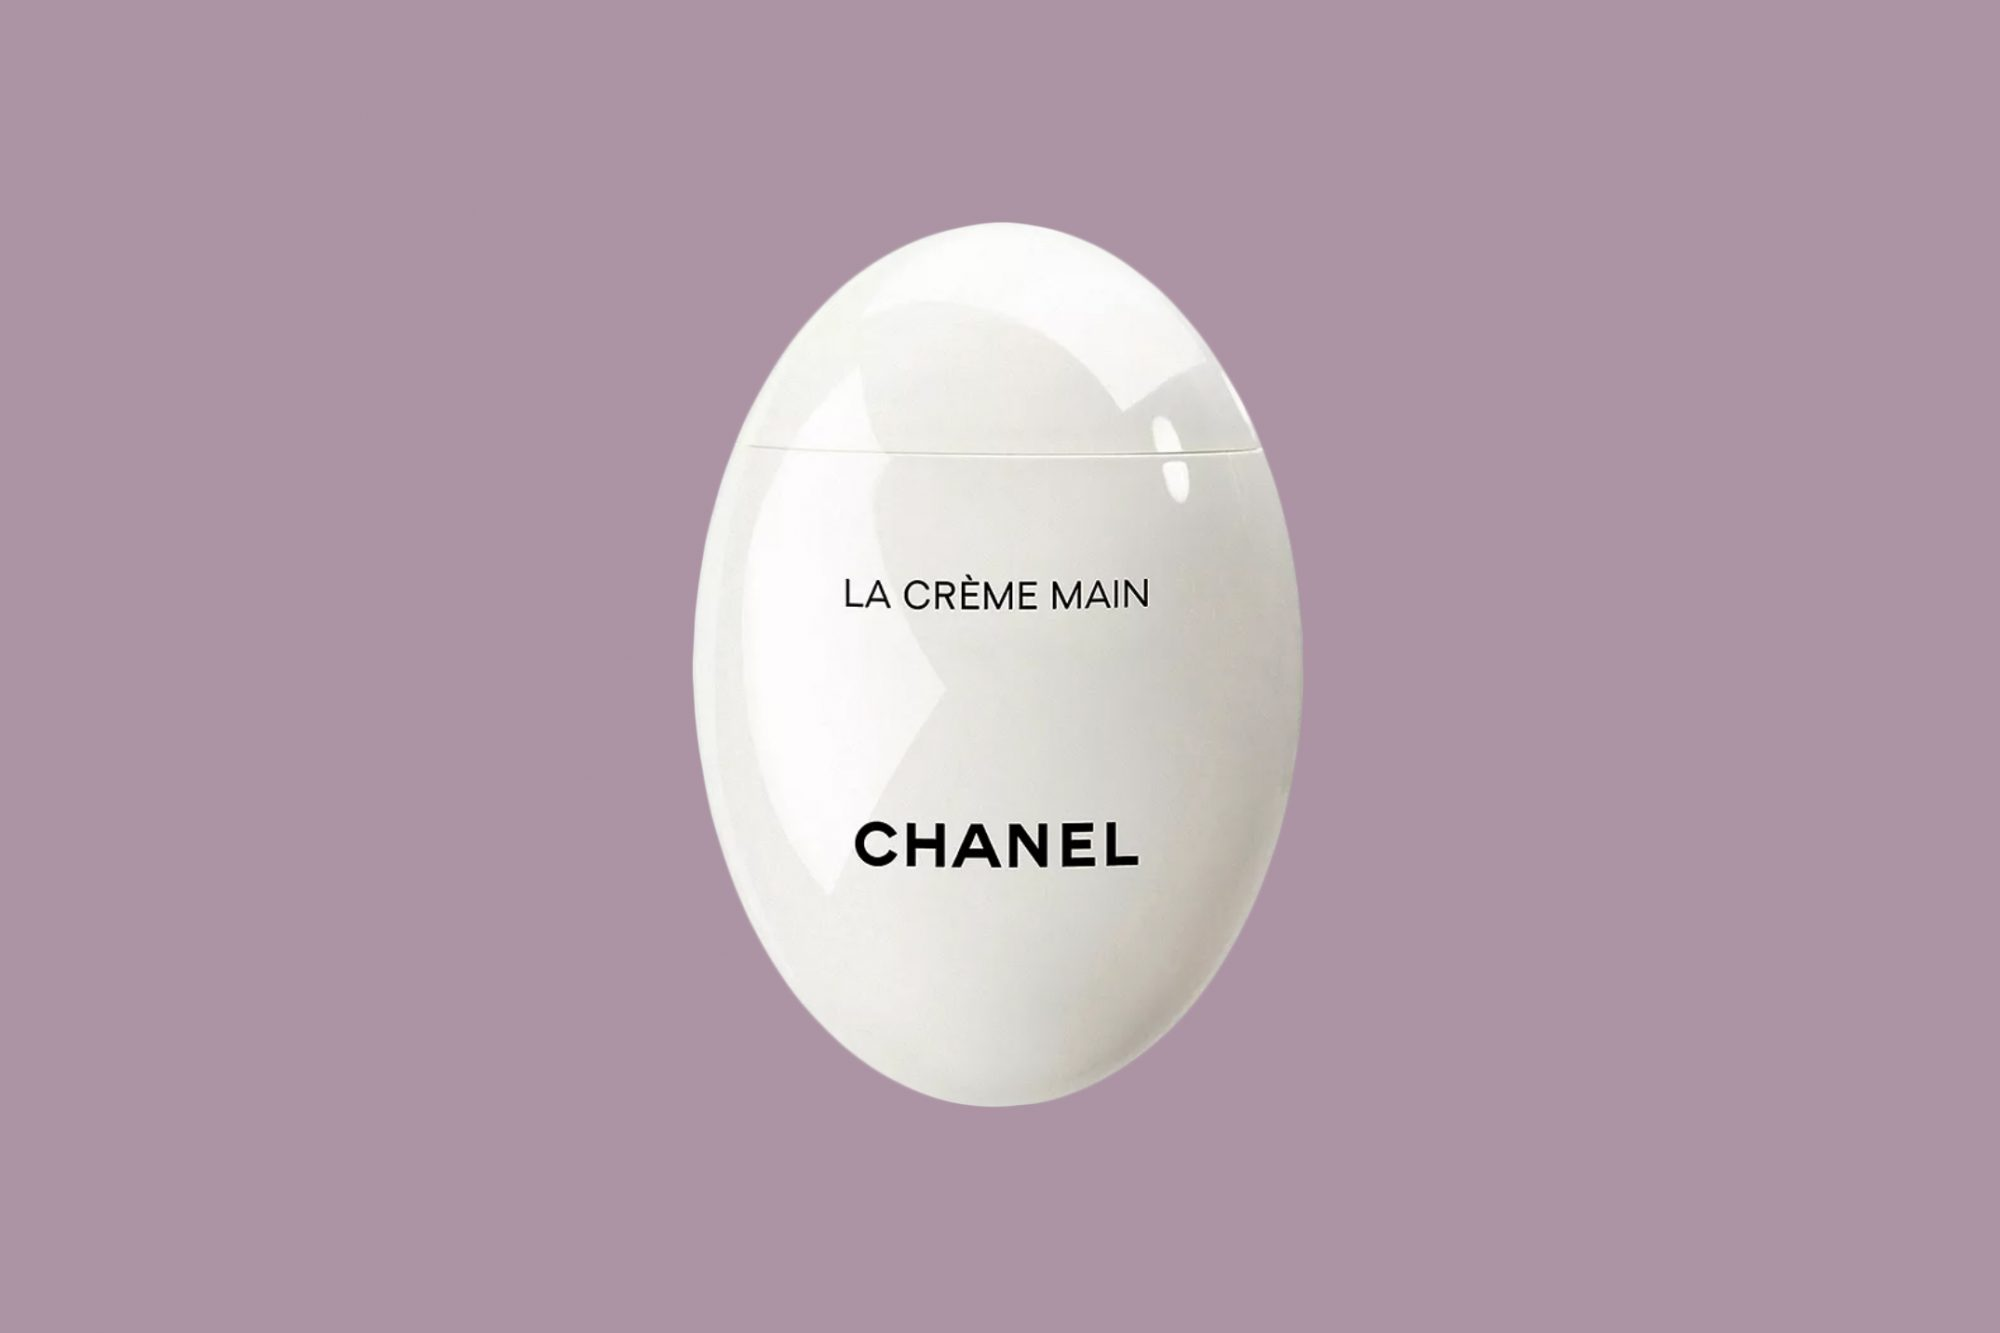 Chanel La Crème Main Hand Cream